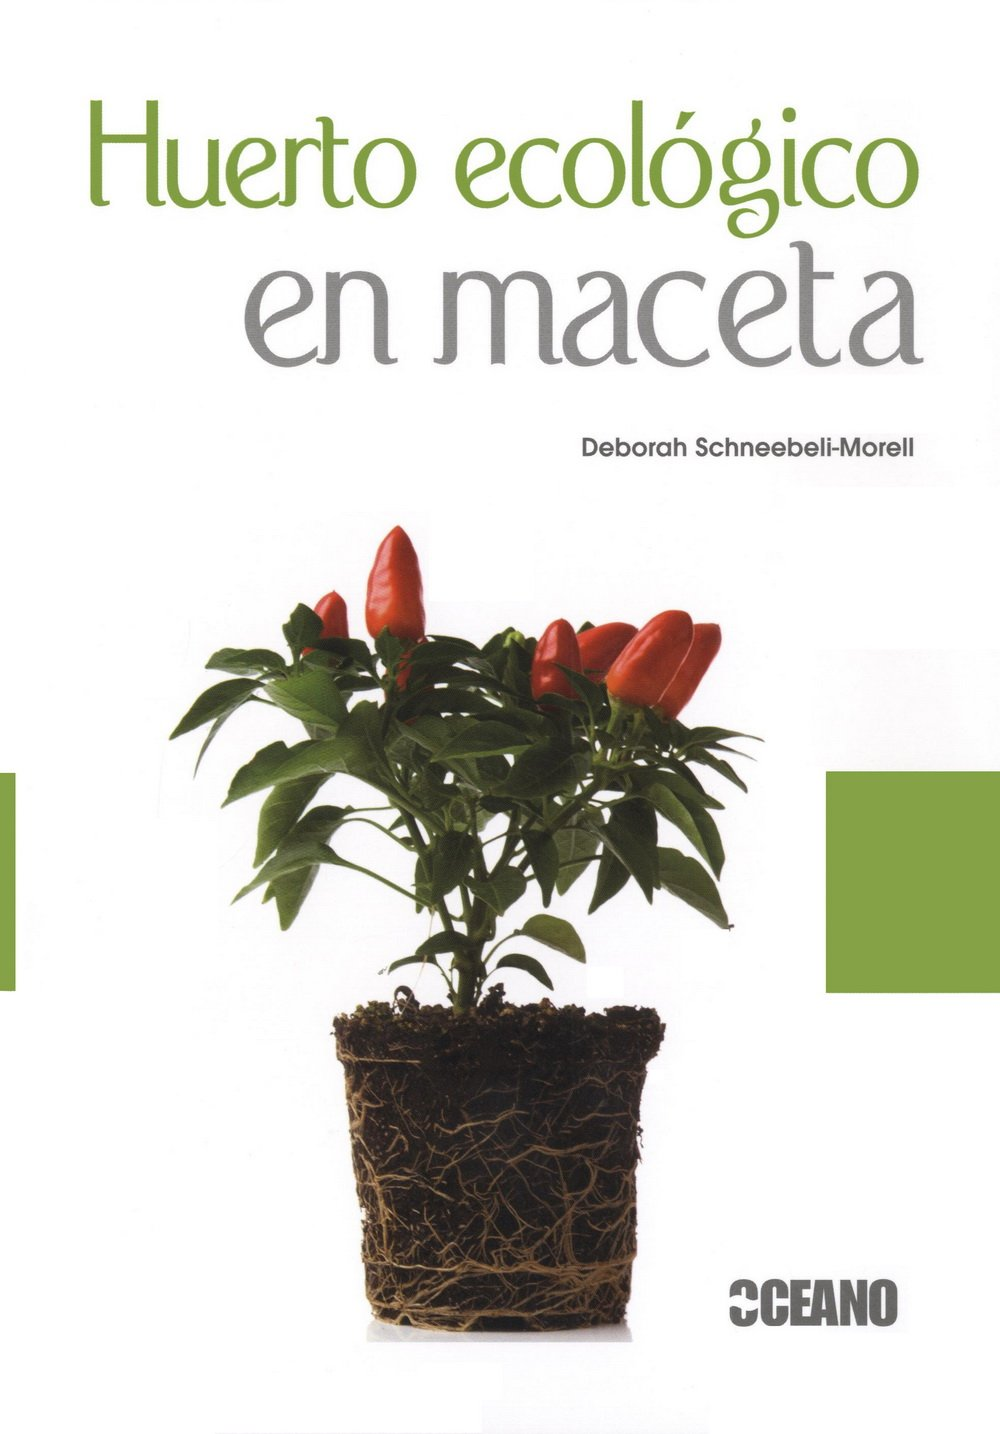 Huerto ecológico en maceta (Spanish) Paperback – March 1, 2012